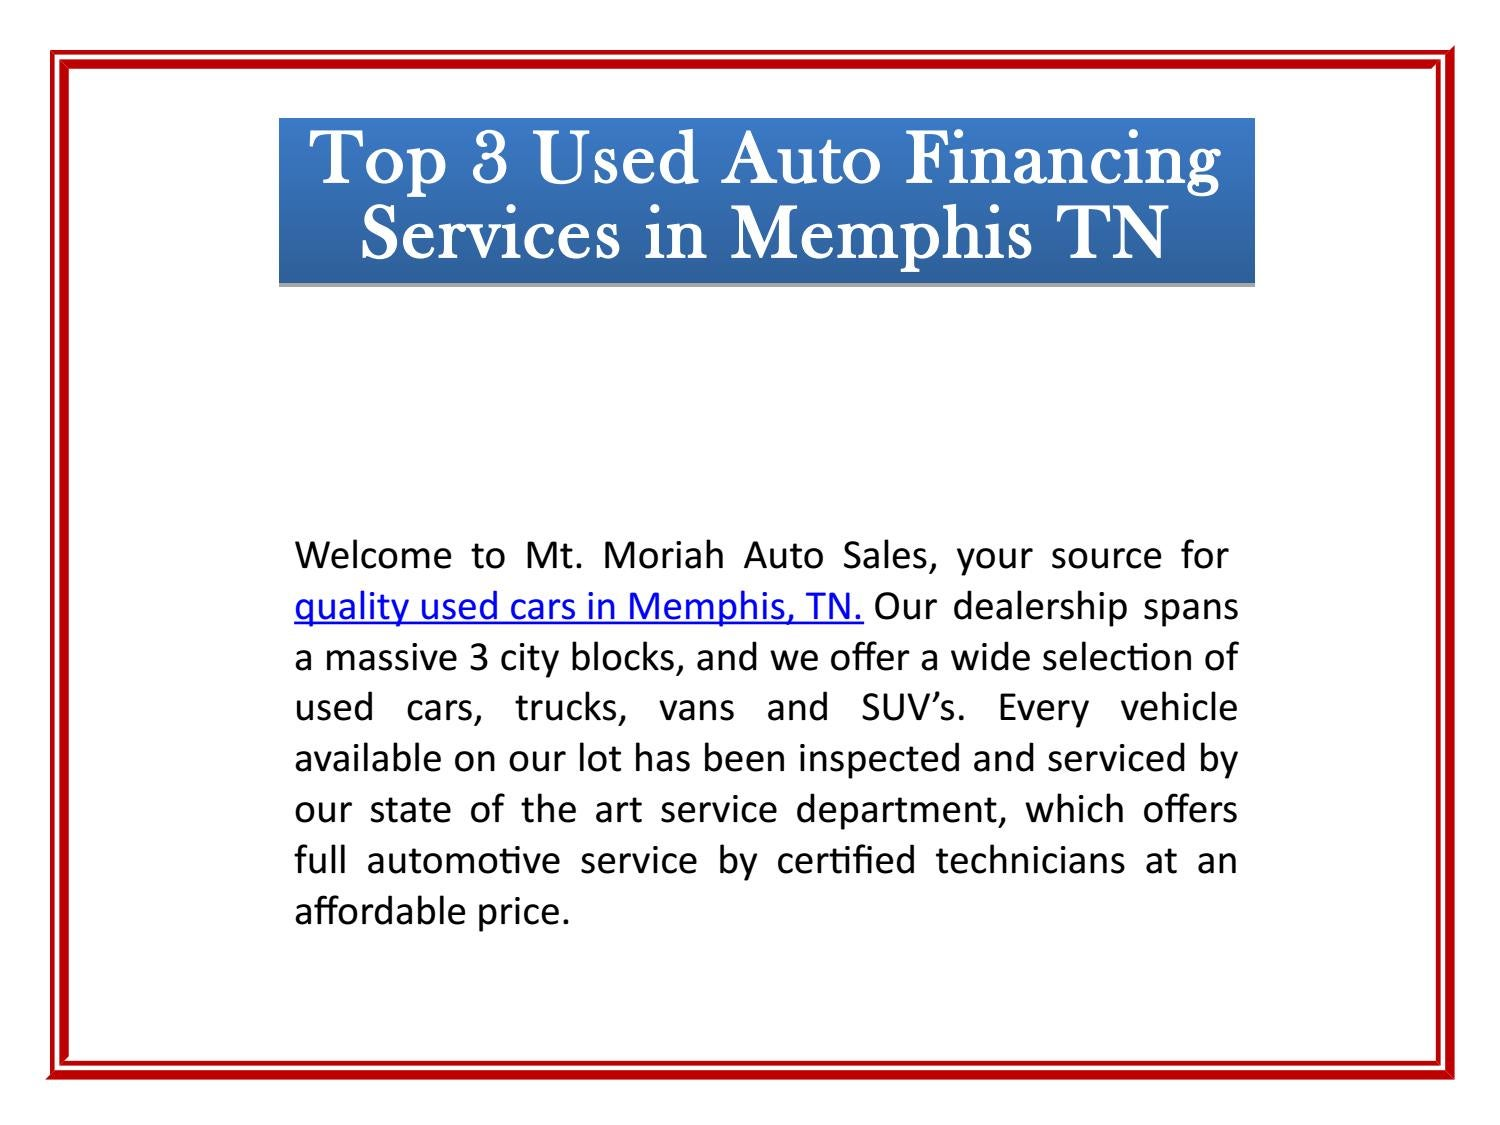 Mt Moriah Auto Sales >> Top 3 Used Auto Financing Services In Memphis Tn By